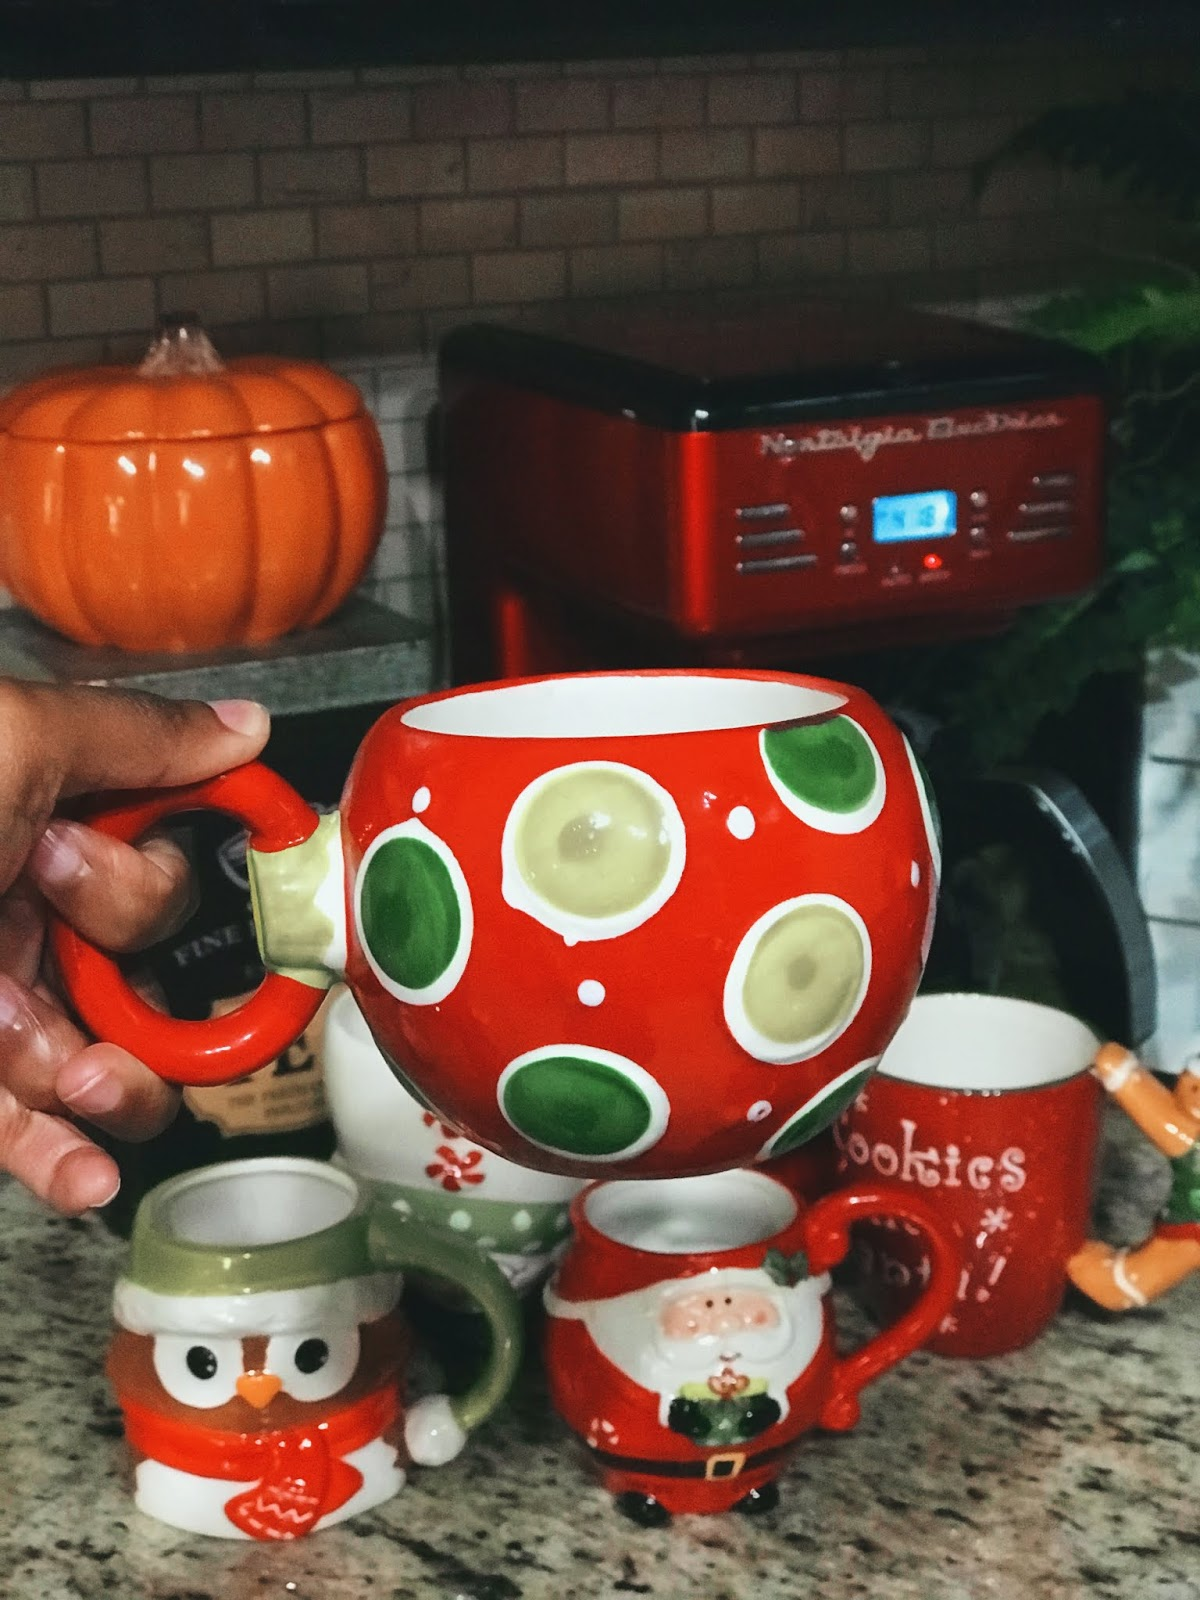 A Look AT ALL Of My Cozy And Festive Christmas Coffee Mugs That I Will Be Using This Season!